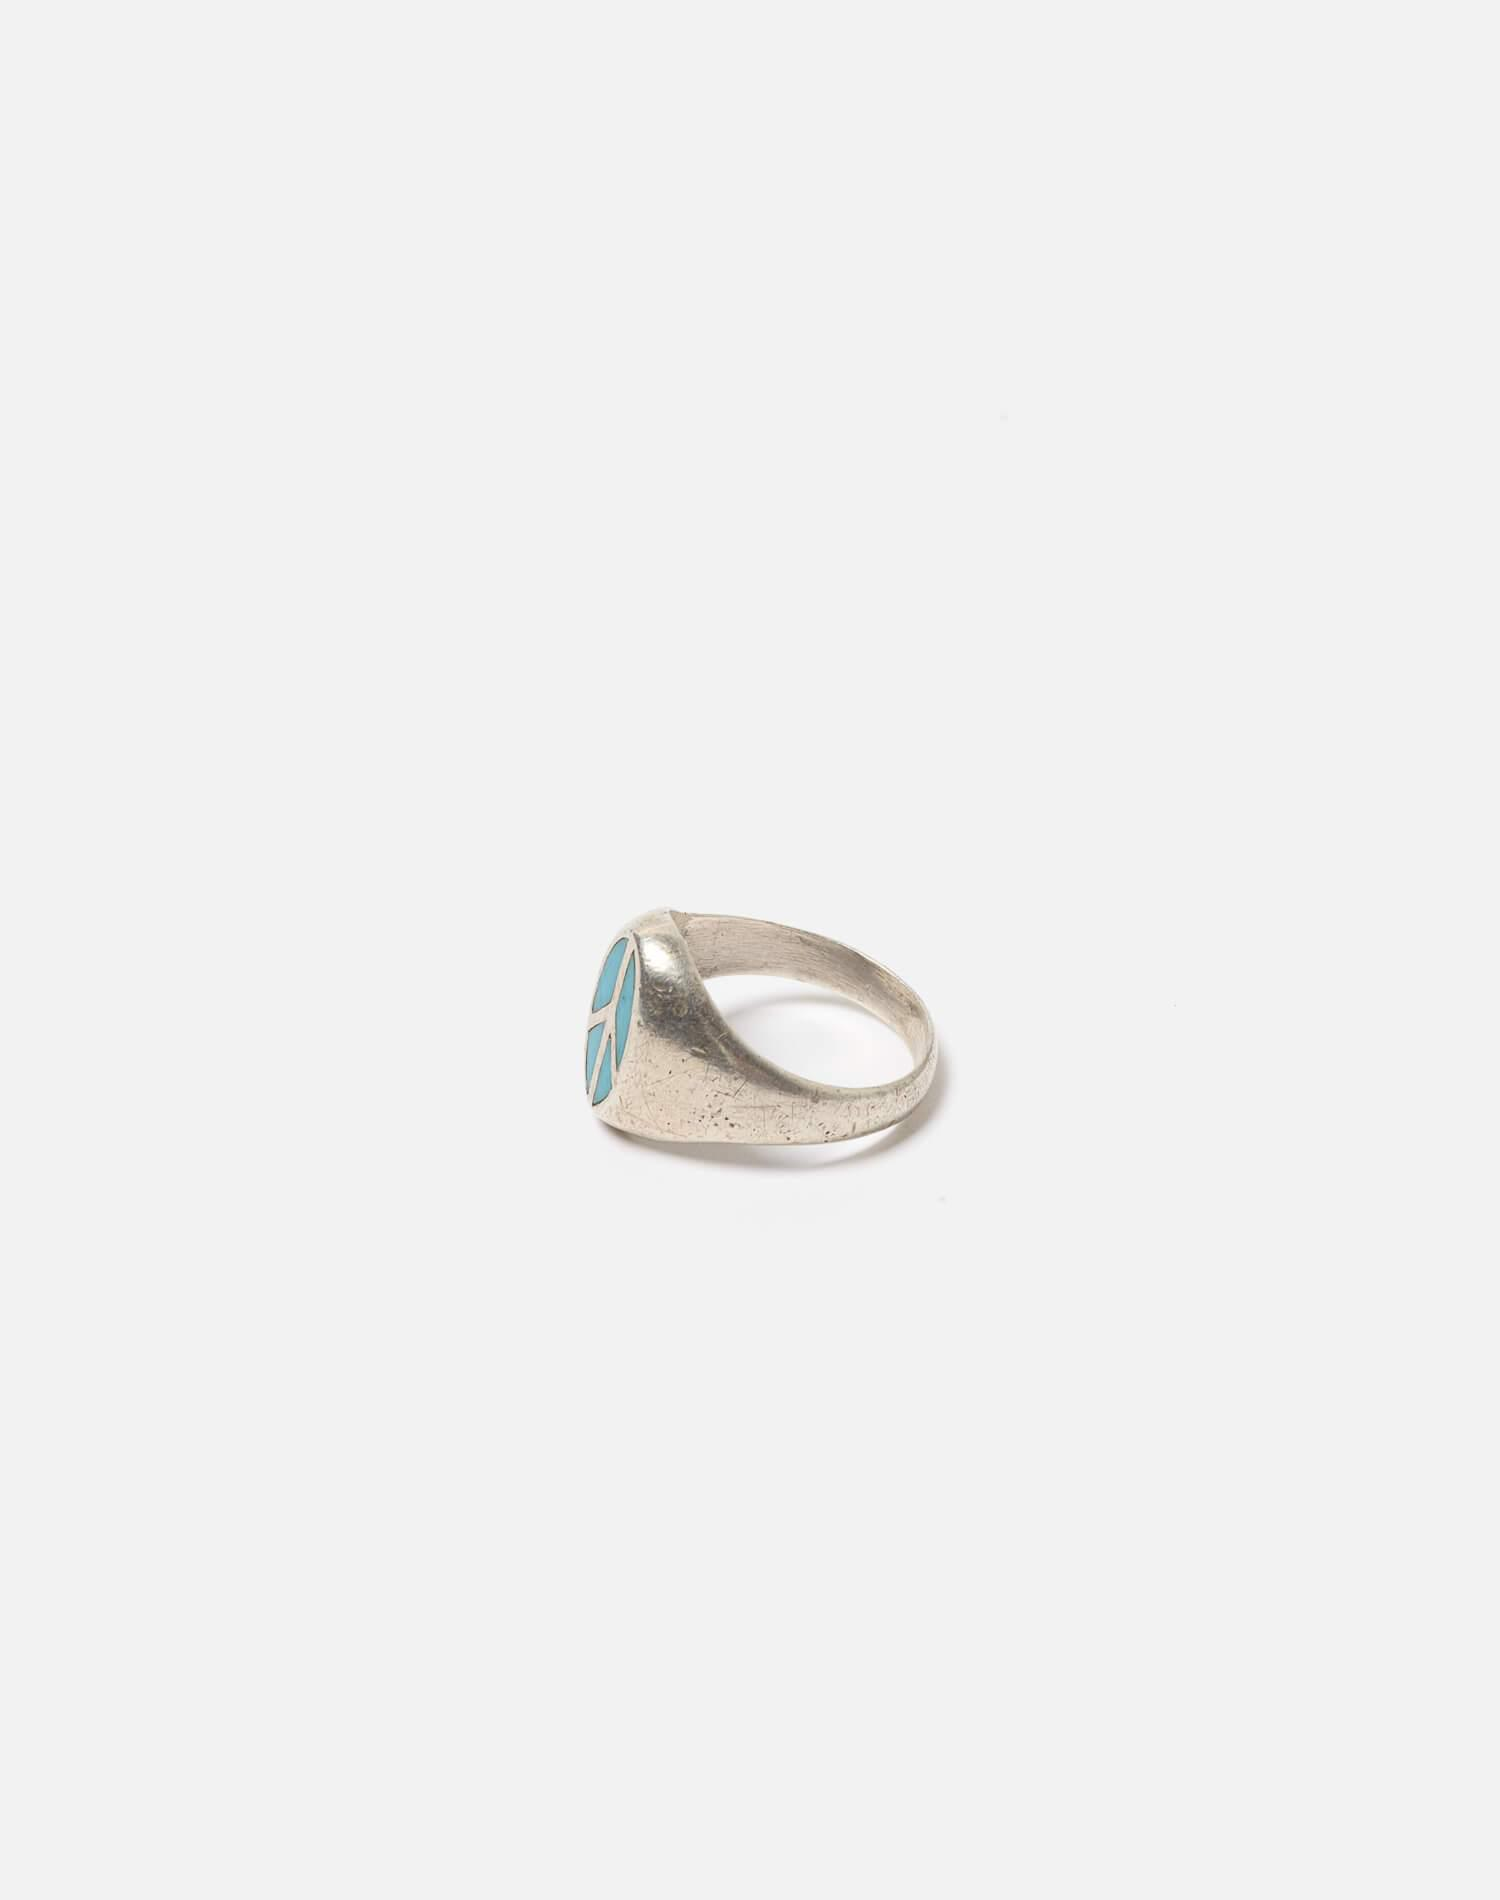 1960s Mexican Sterling Inlaid Turquoise Peace Sign Ring - #101 1